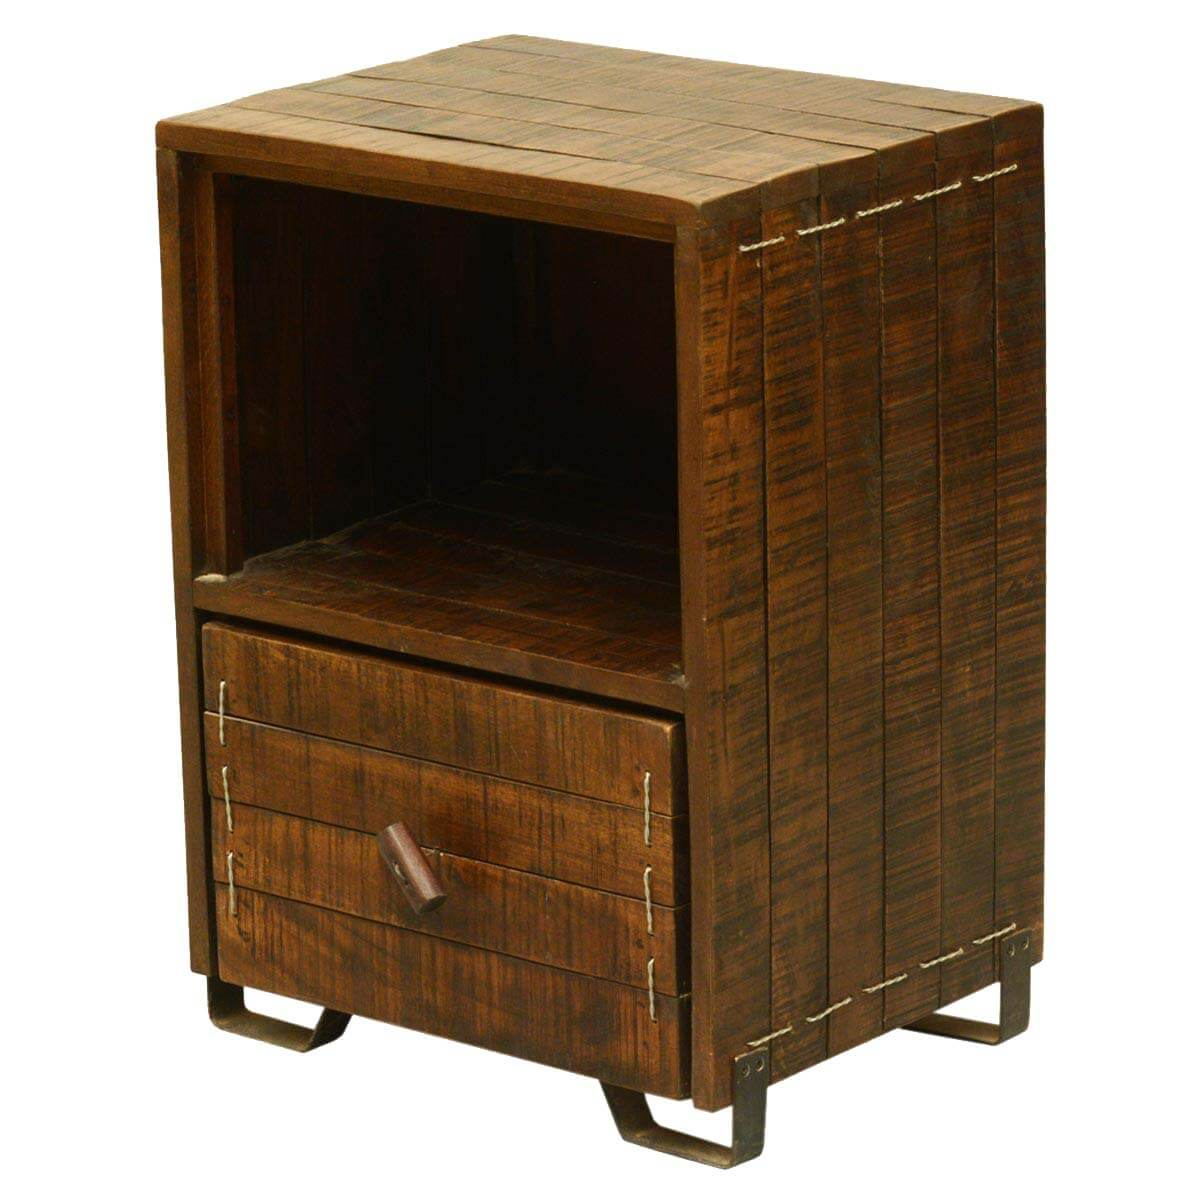 Modern scholar reclaimed wood single drawer end table for End tables with drawers